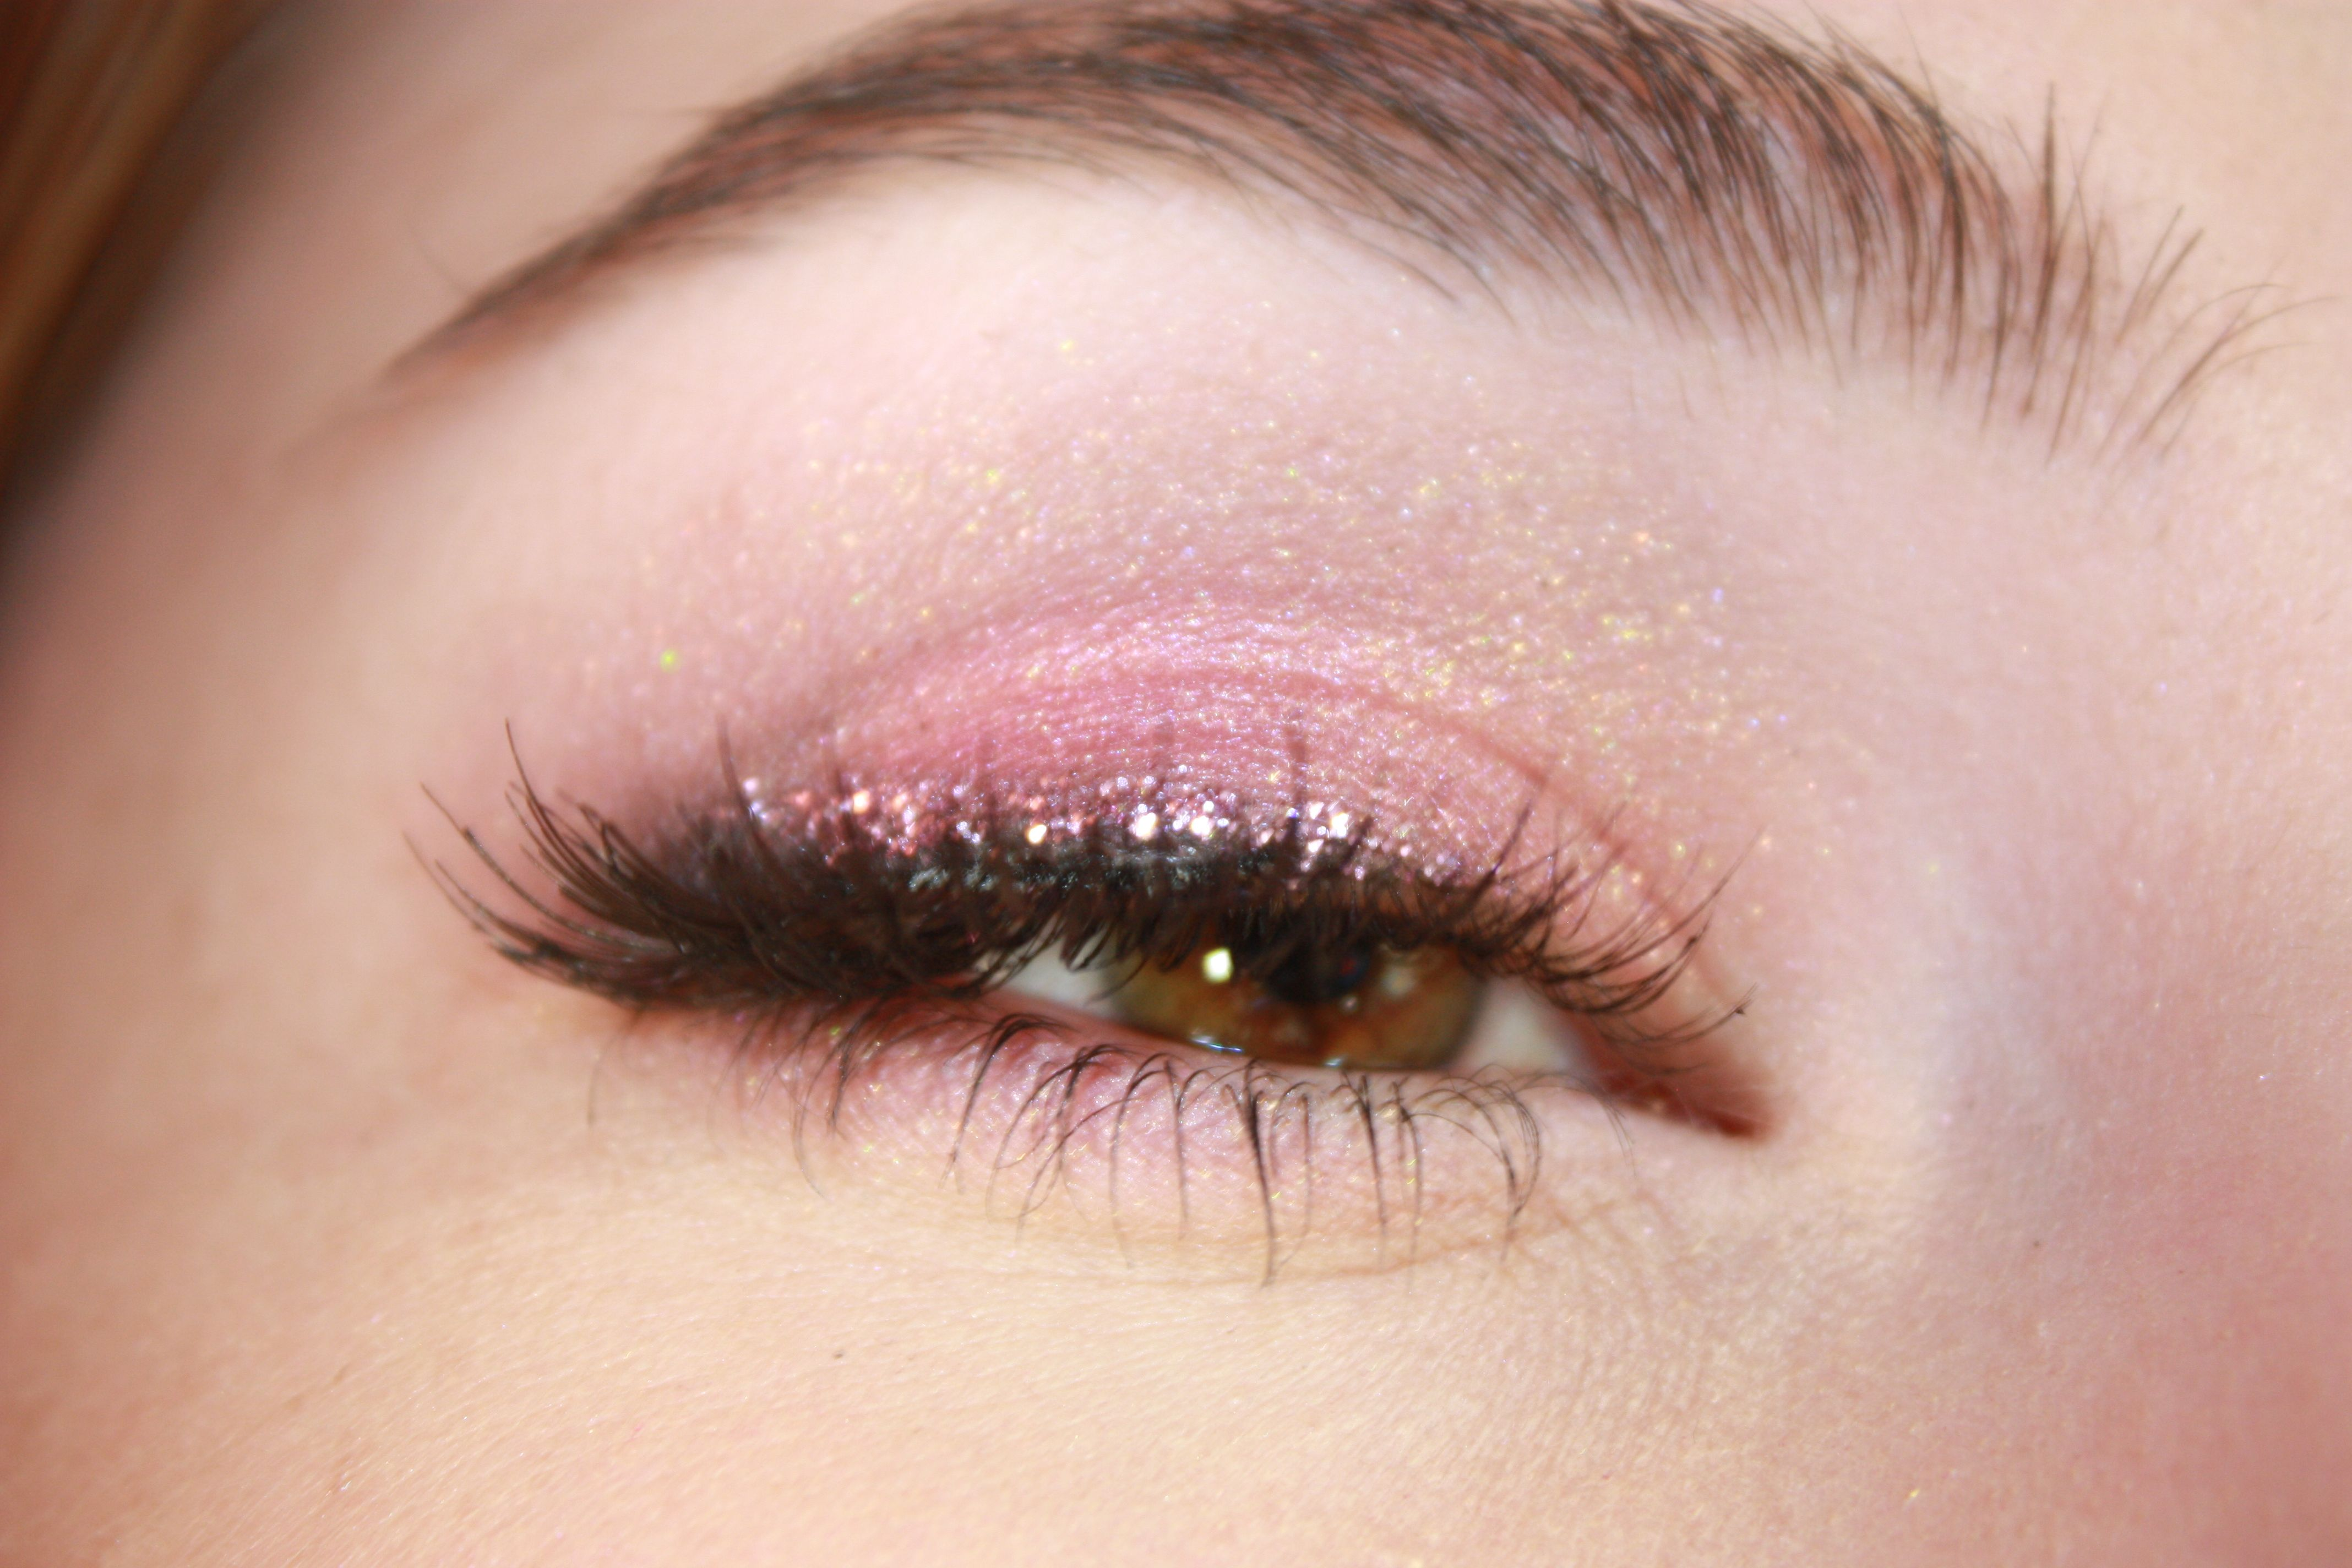 Using E.L.F. cosmetics Brightening Eyeshadow Quad in Glam